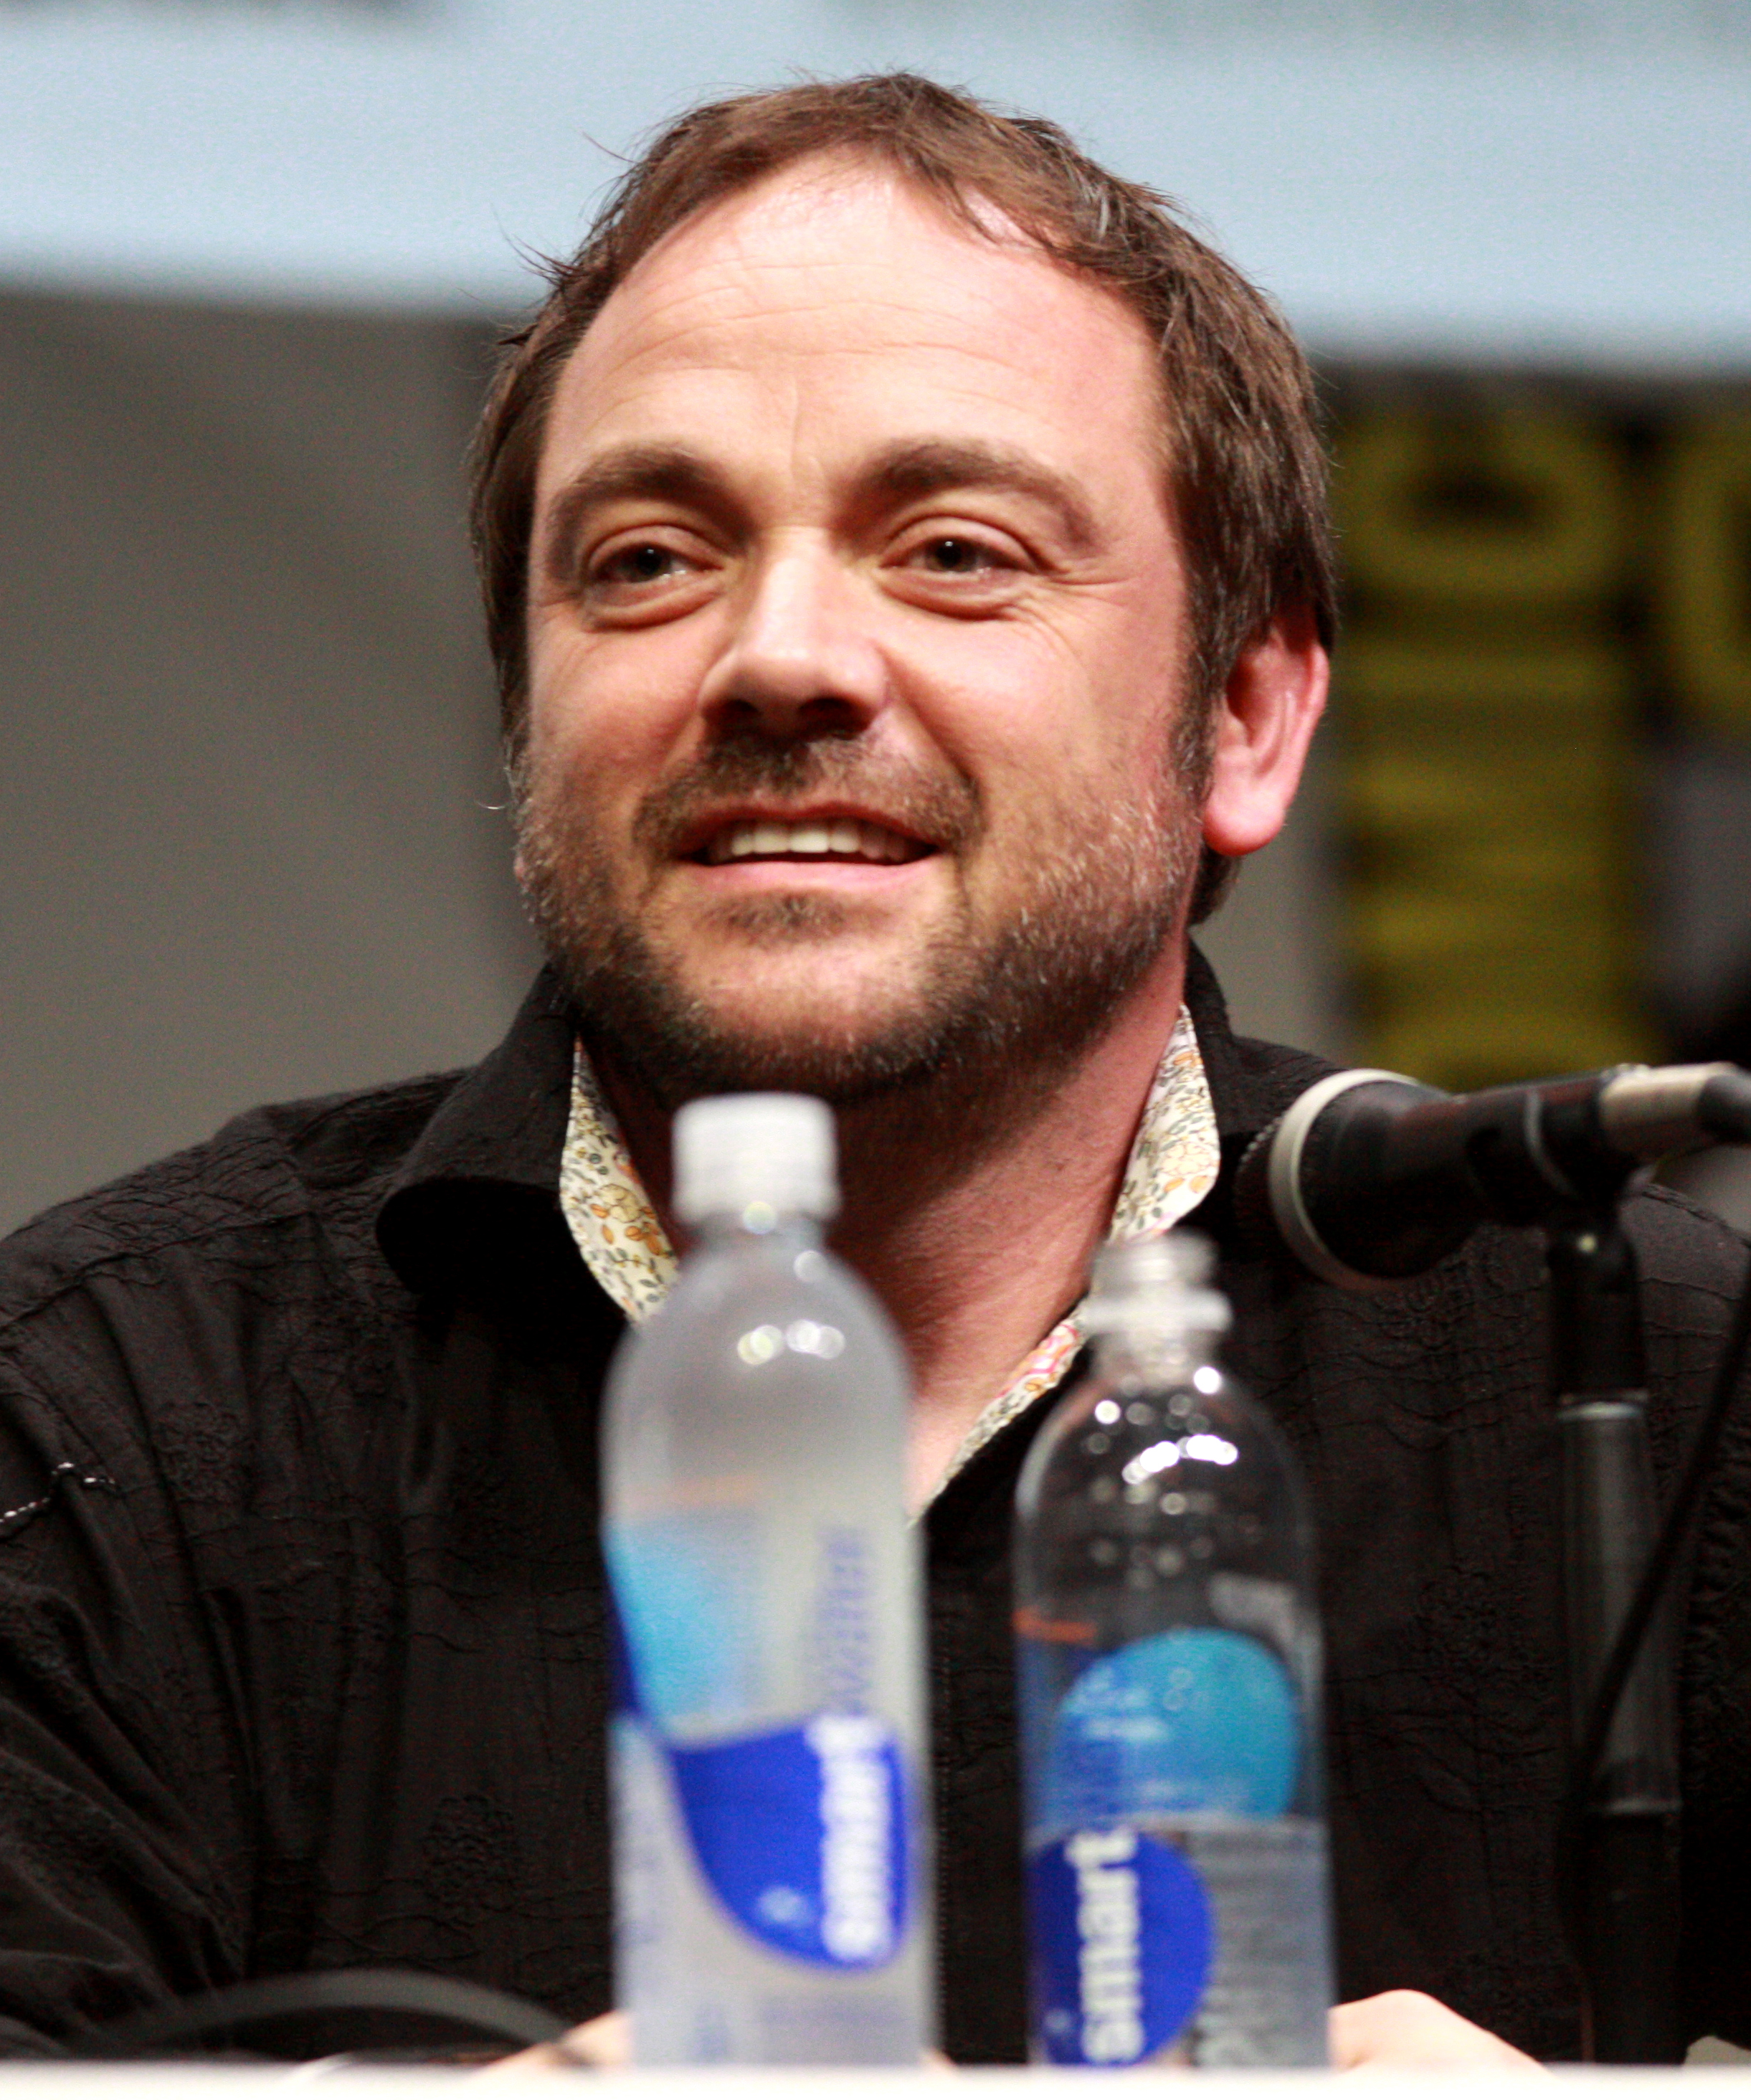 mark sheppard engagedmark sheppard son, mark sheppard height, mark sheppard age, mark sheppard supernatural, mark sheppard doctor who, mark sheppard imdb, mark sheppard twitter, mark sheppard young, mark sheppard net worth, mark sheppard charmed, mark sheppard crowley, mark sheppard fiance, mark sheppard star trek, mark sheppard engaged, mark sheppard eye color, mark sheppard chuck, mark shepard permaculture, mark sheppard drums, mark sheppard father, mark sheppard band